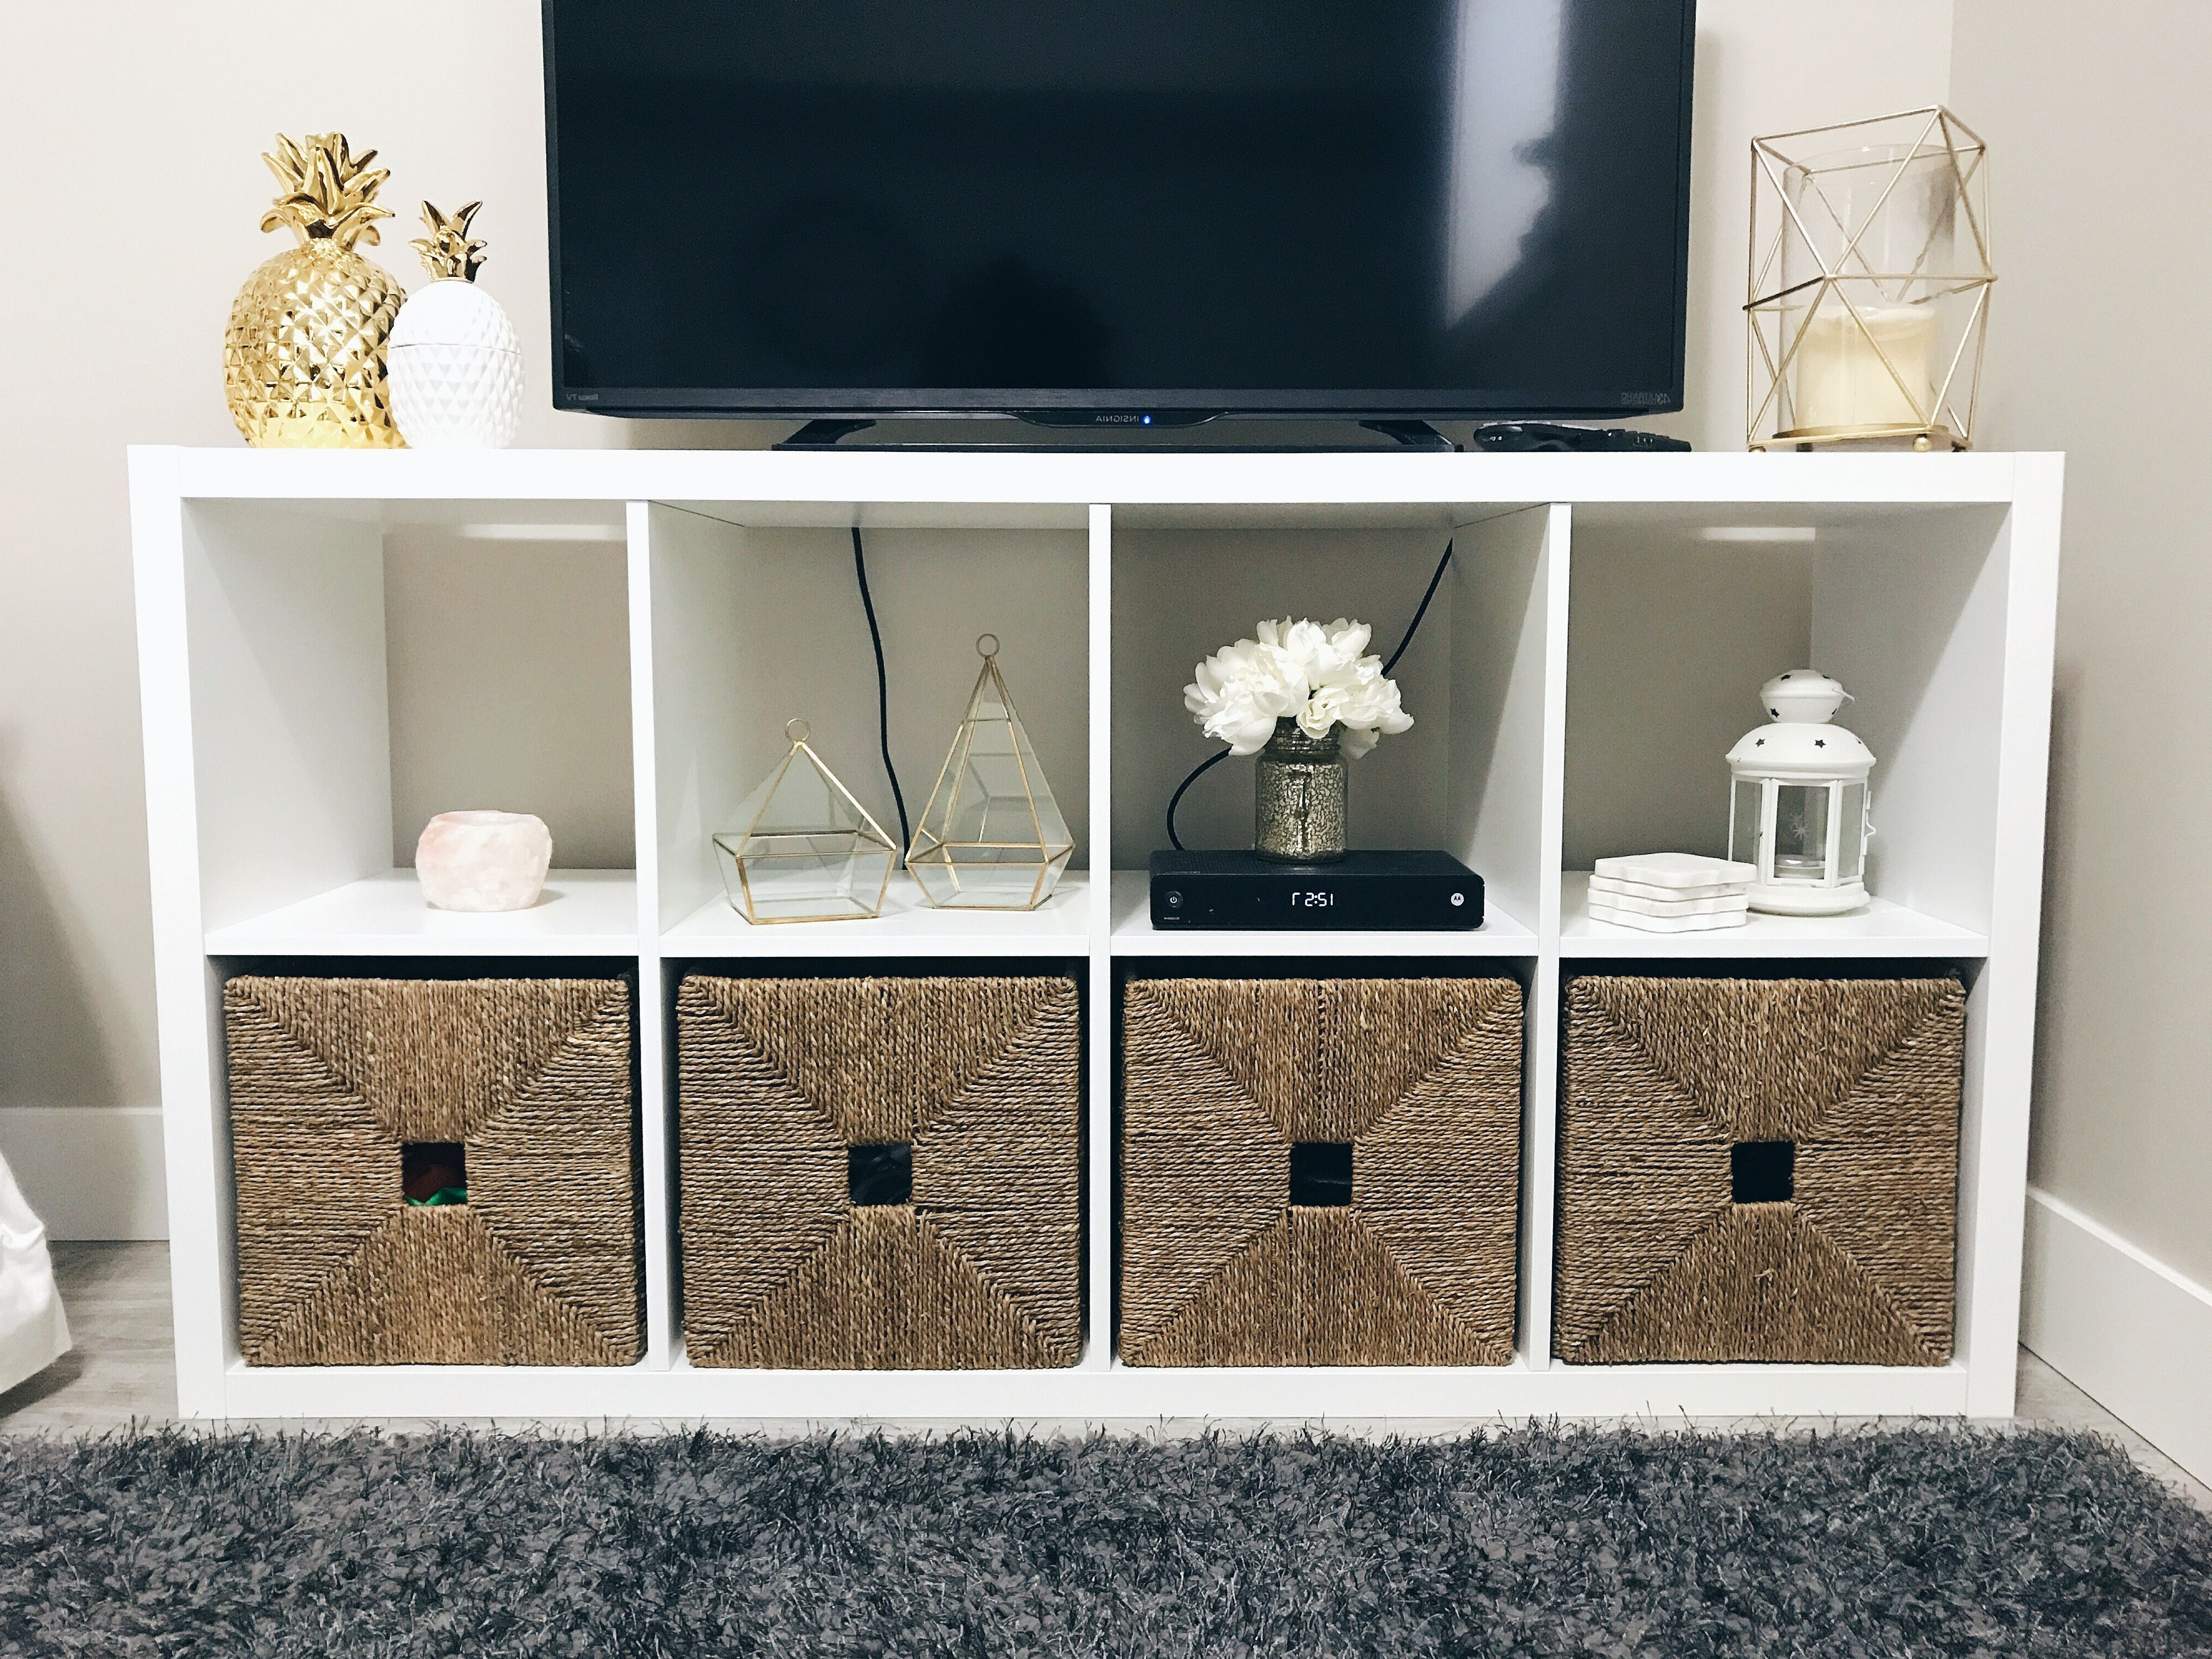 Widely Used Tv Stands With Baskets Within Kallax #shelving From #ikea Used As A Tv Stand, Featuring #knipsa (View 2 of 20)